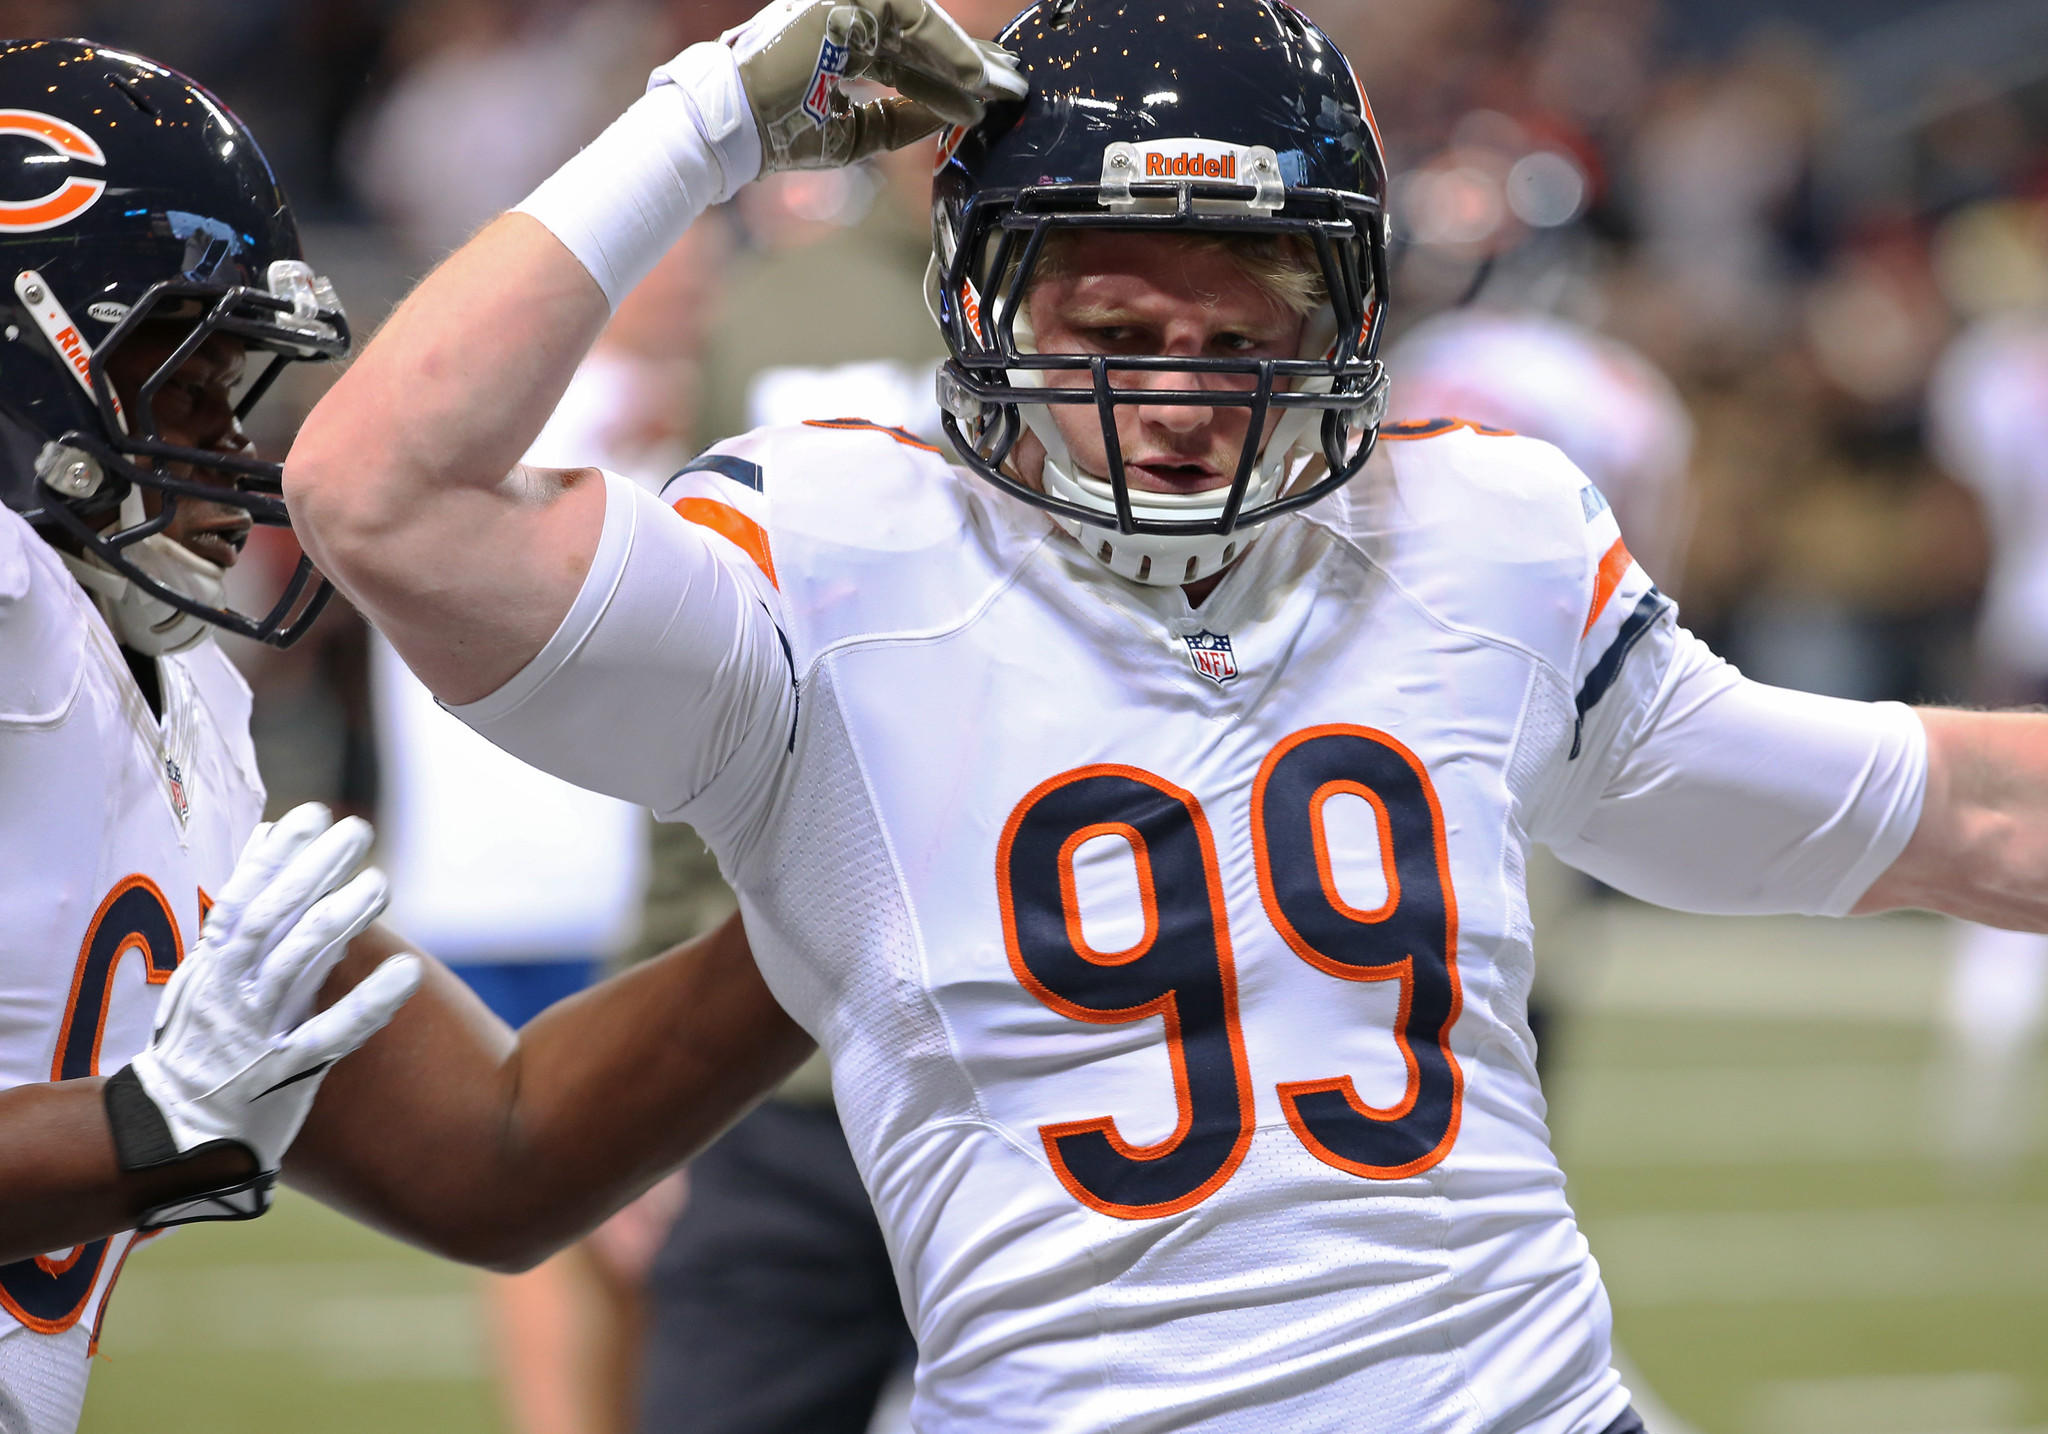 Shea McClellin warms up before a game against the Rams.